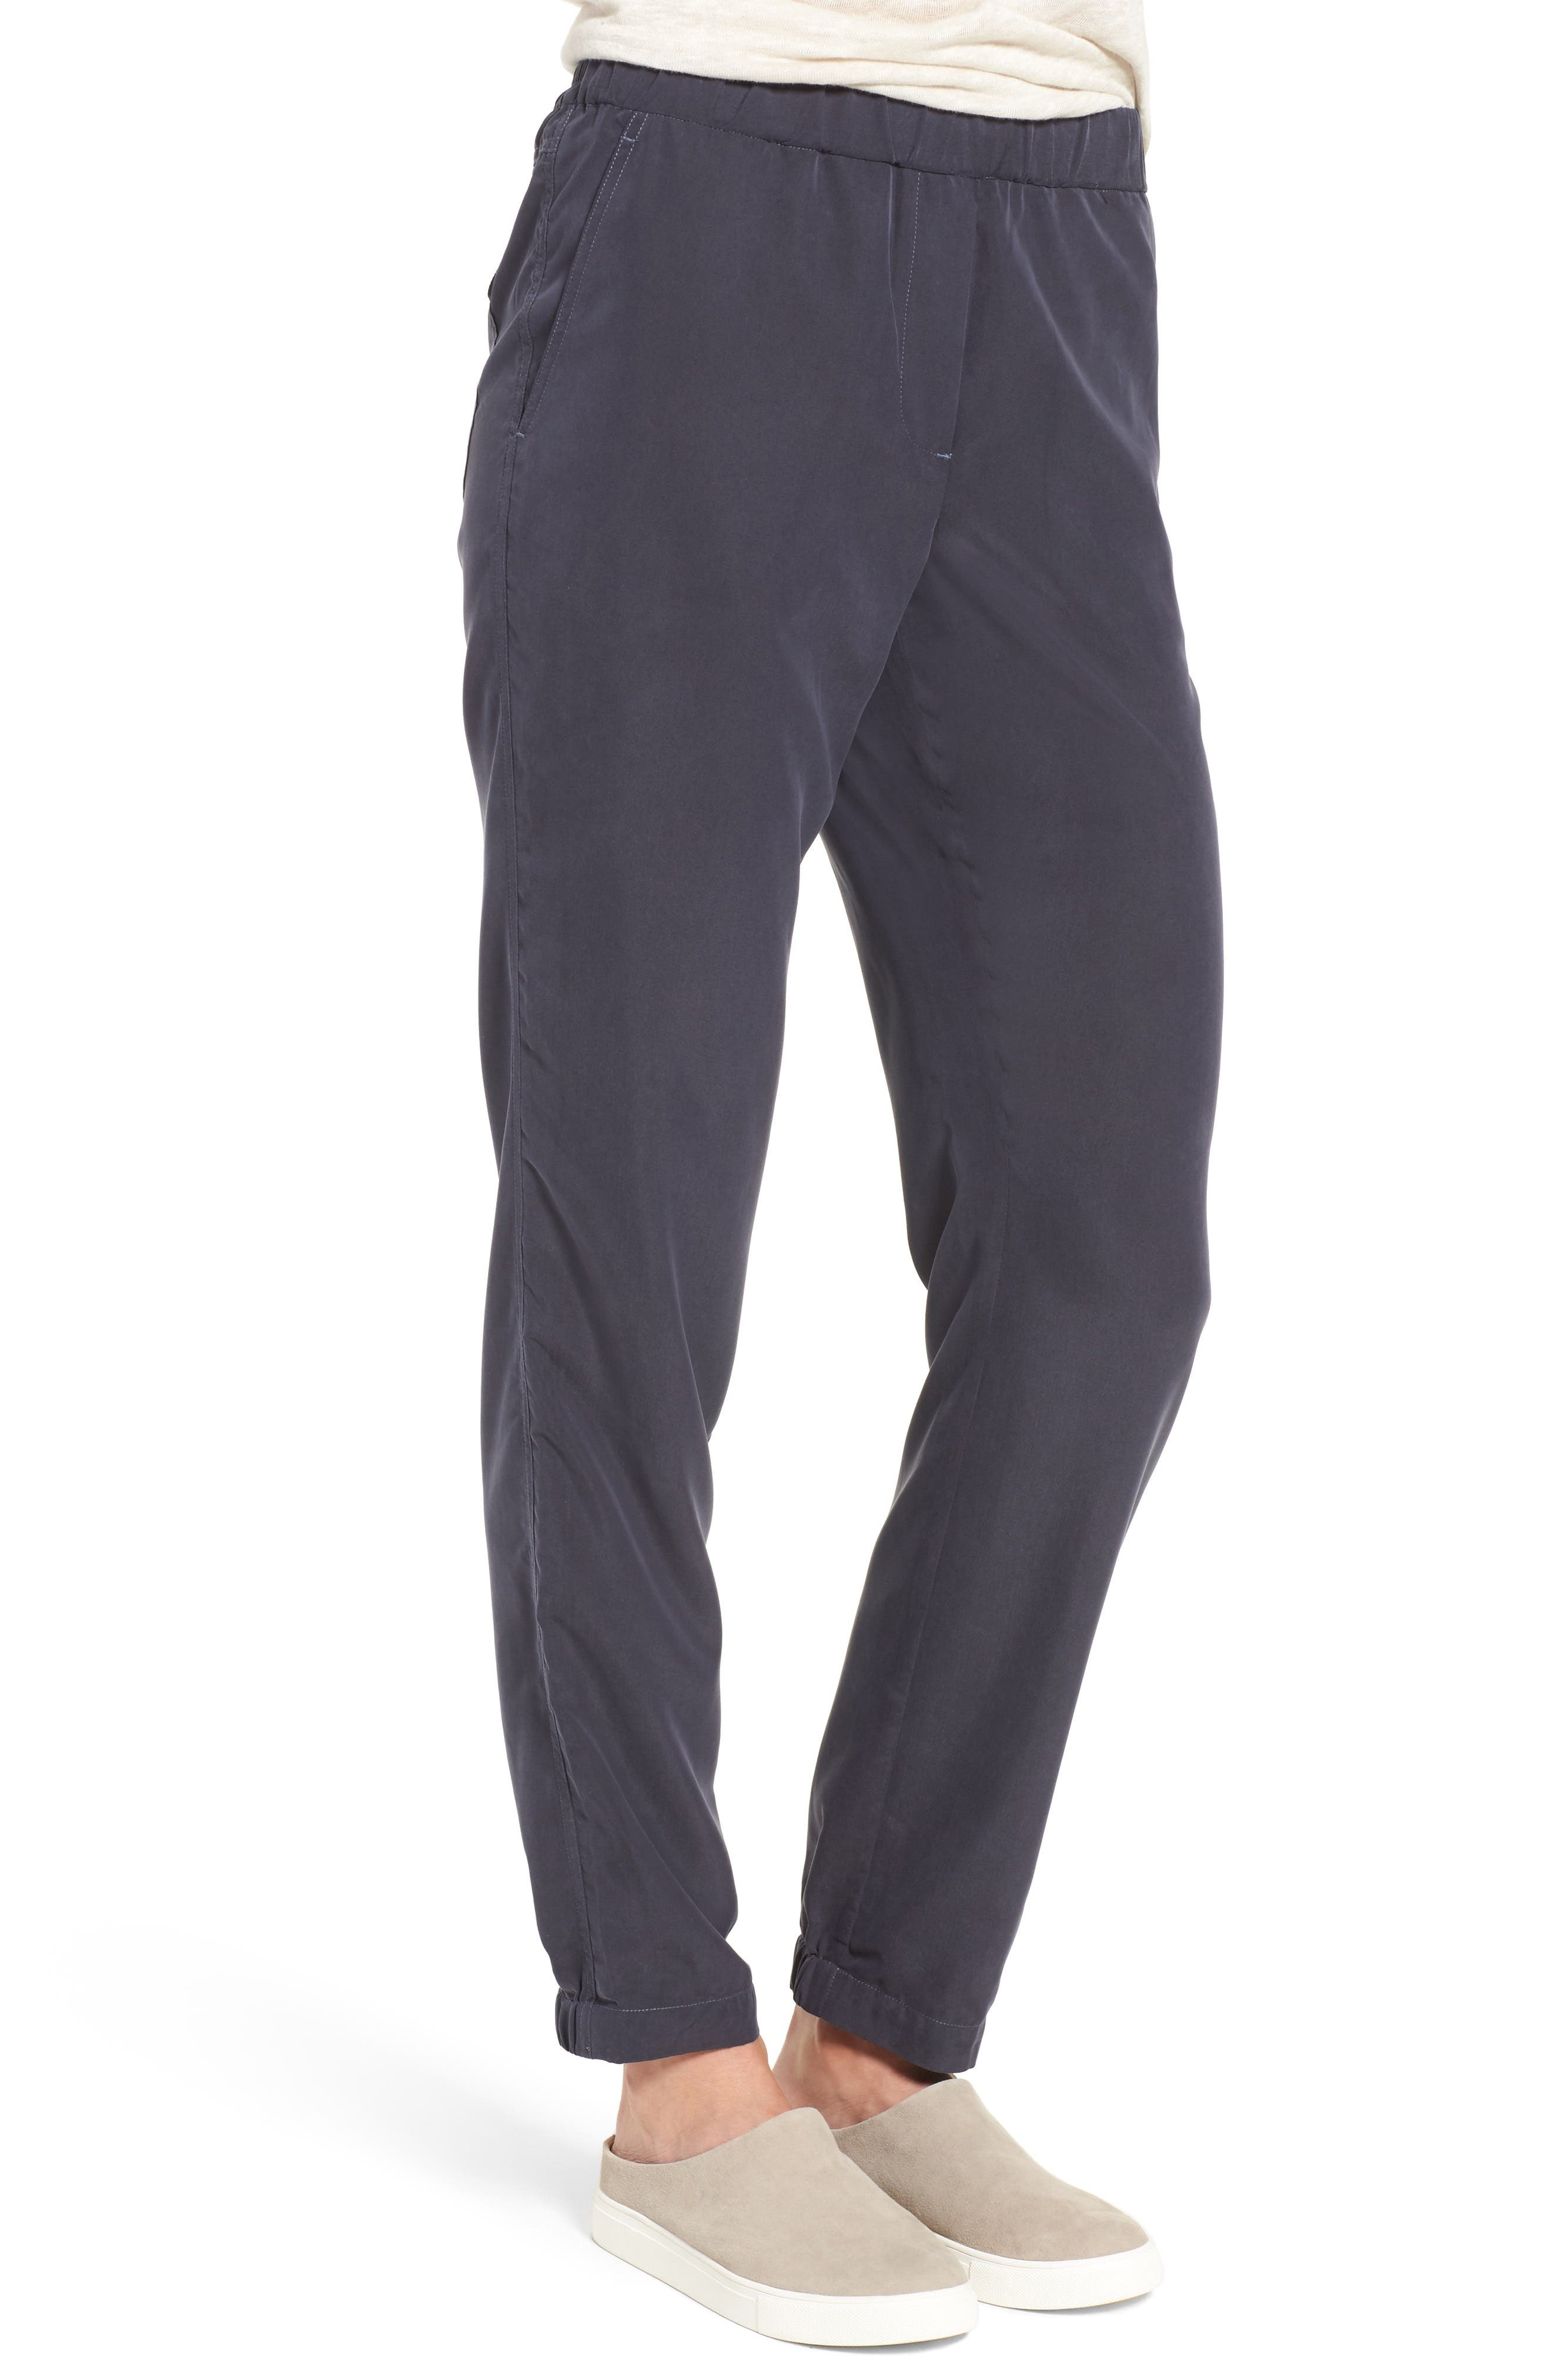 City Slicker Pants,                             Alternate thumbnail 3, color,                             Washed Midnight